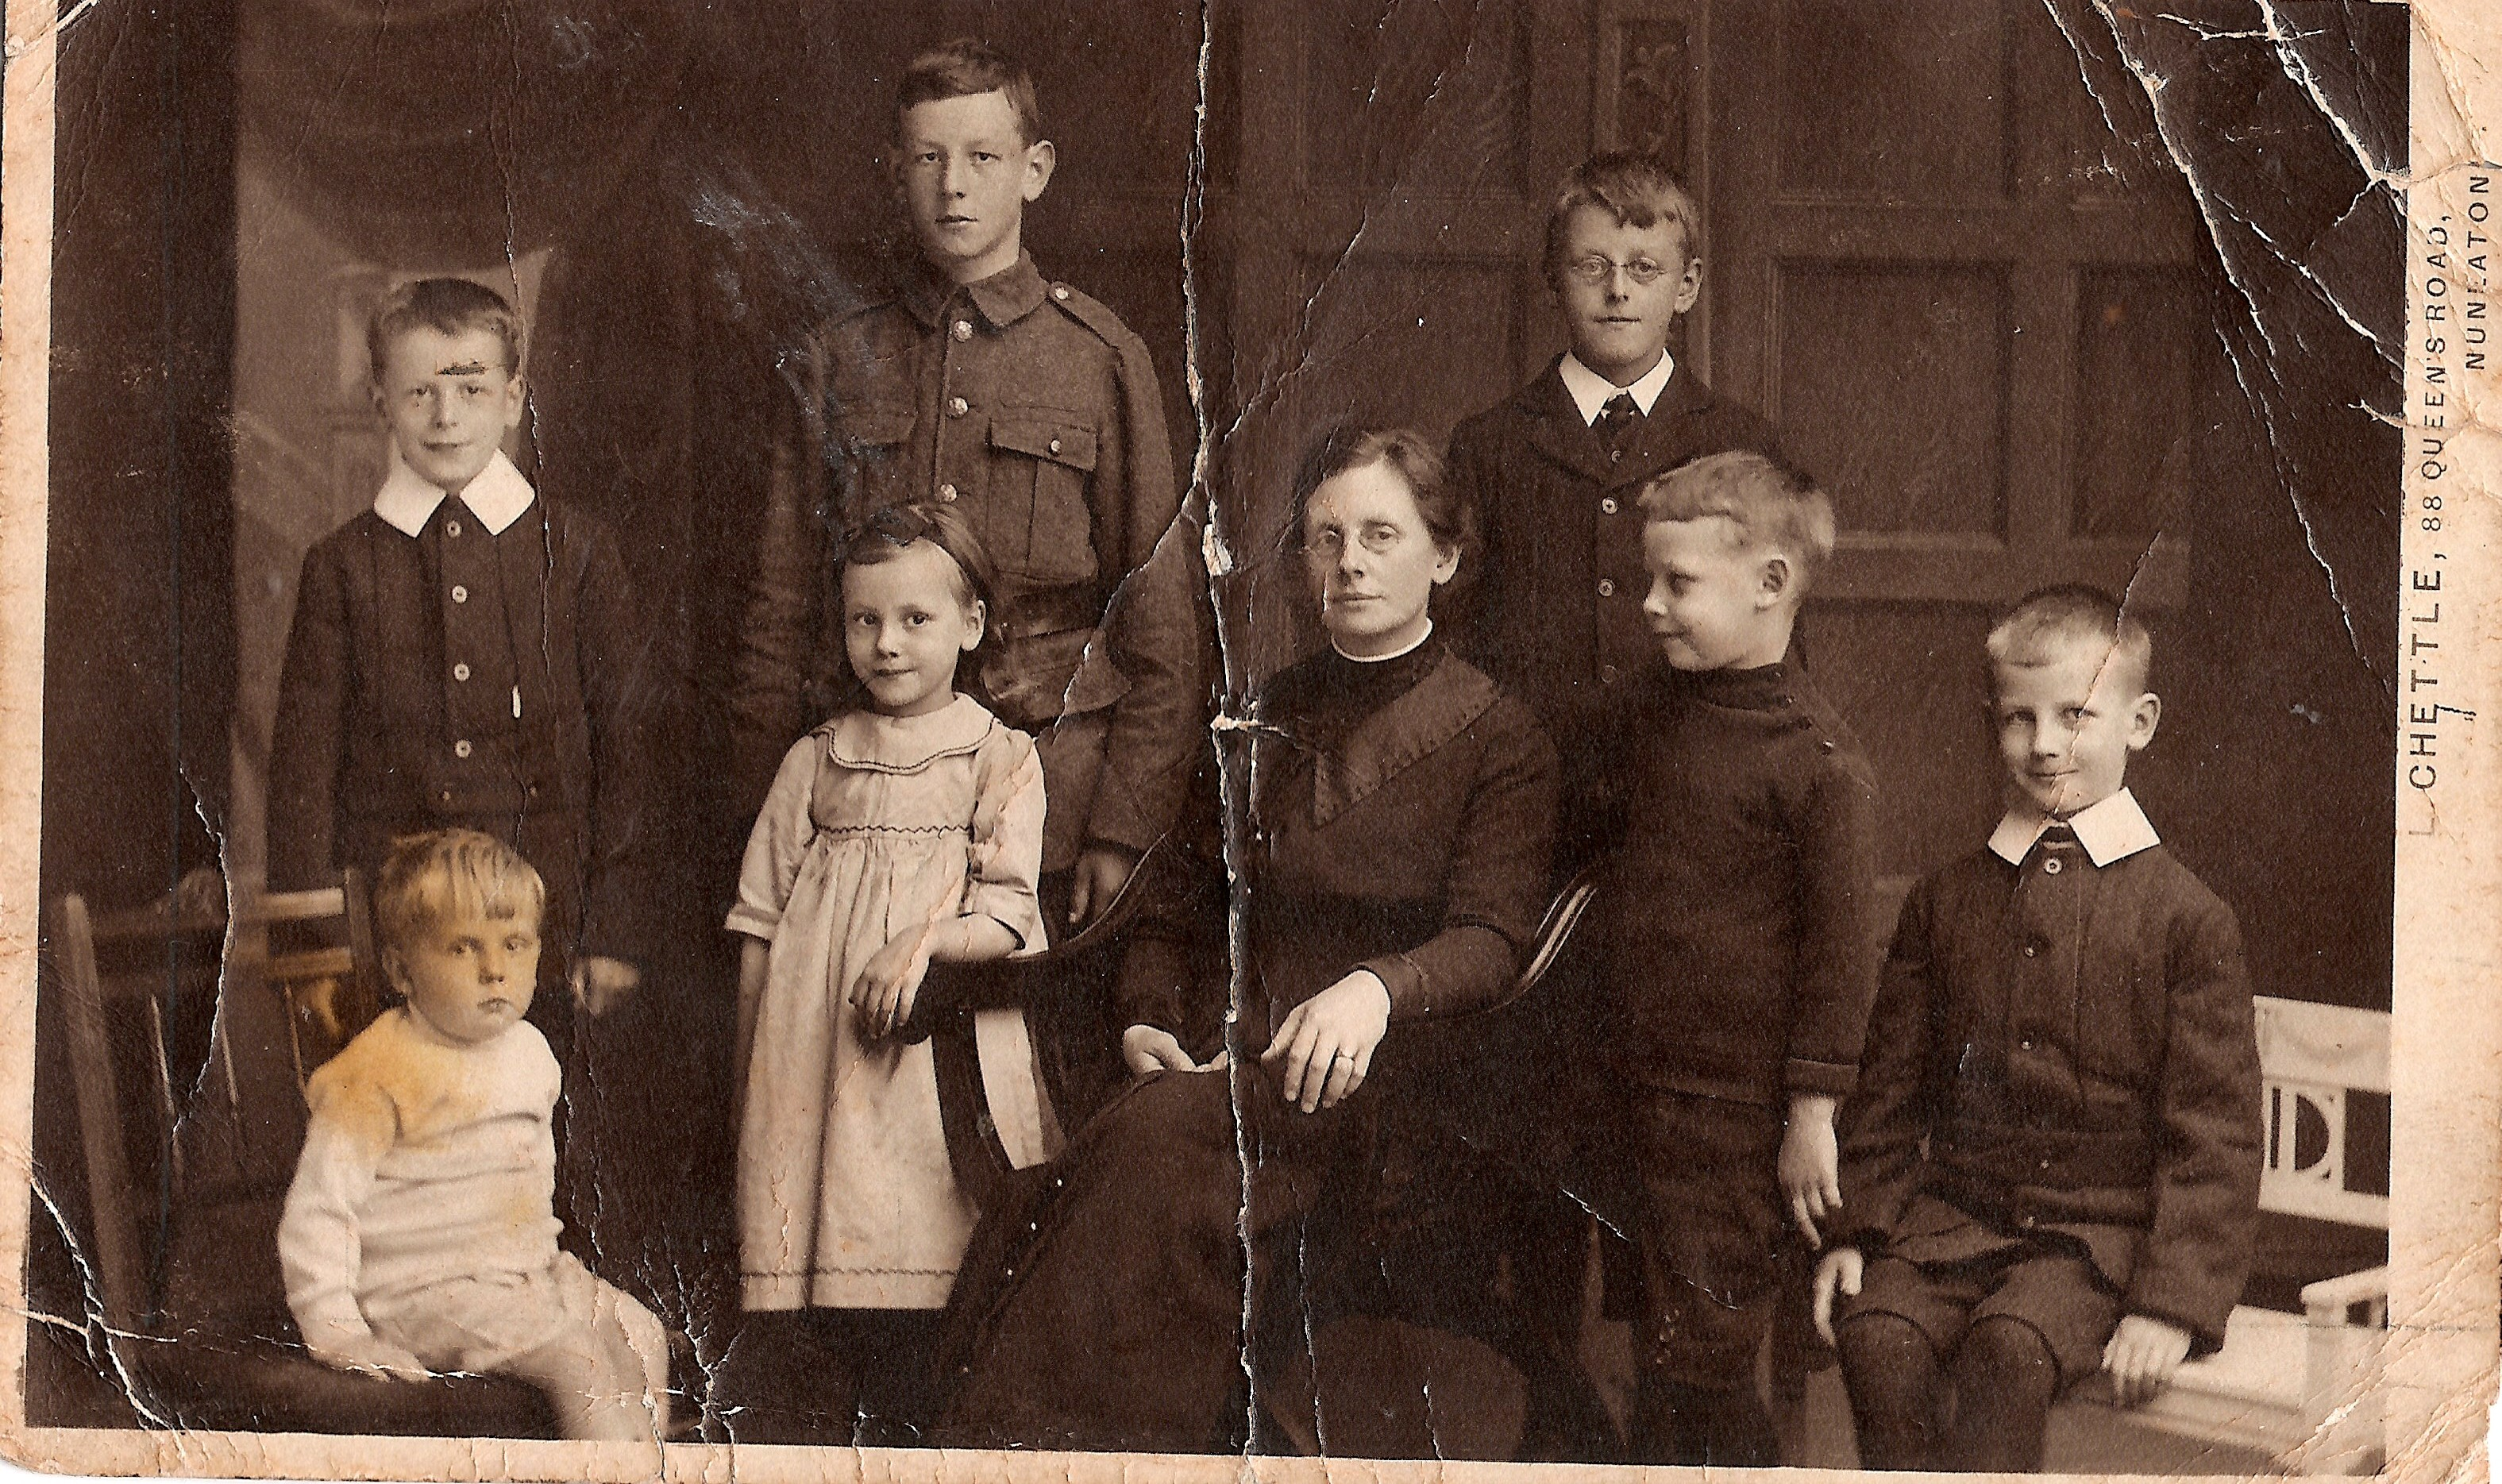 1914+- back - Alec, Ivor, Alan; front - Bryan, Gretta, Mary, Griff, Ted